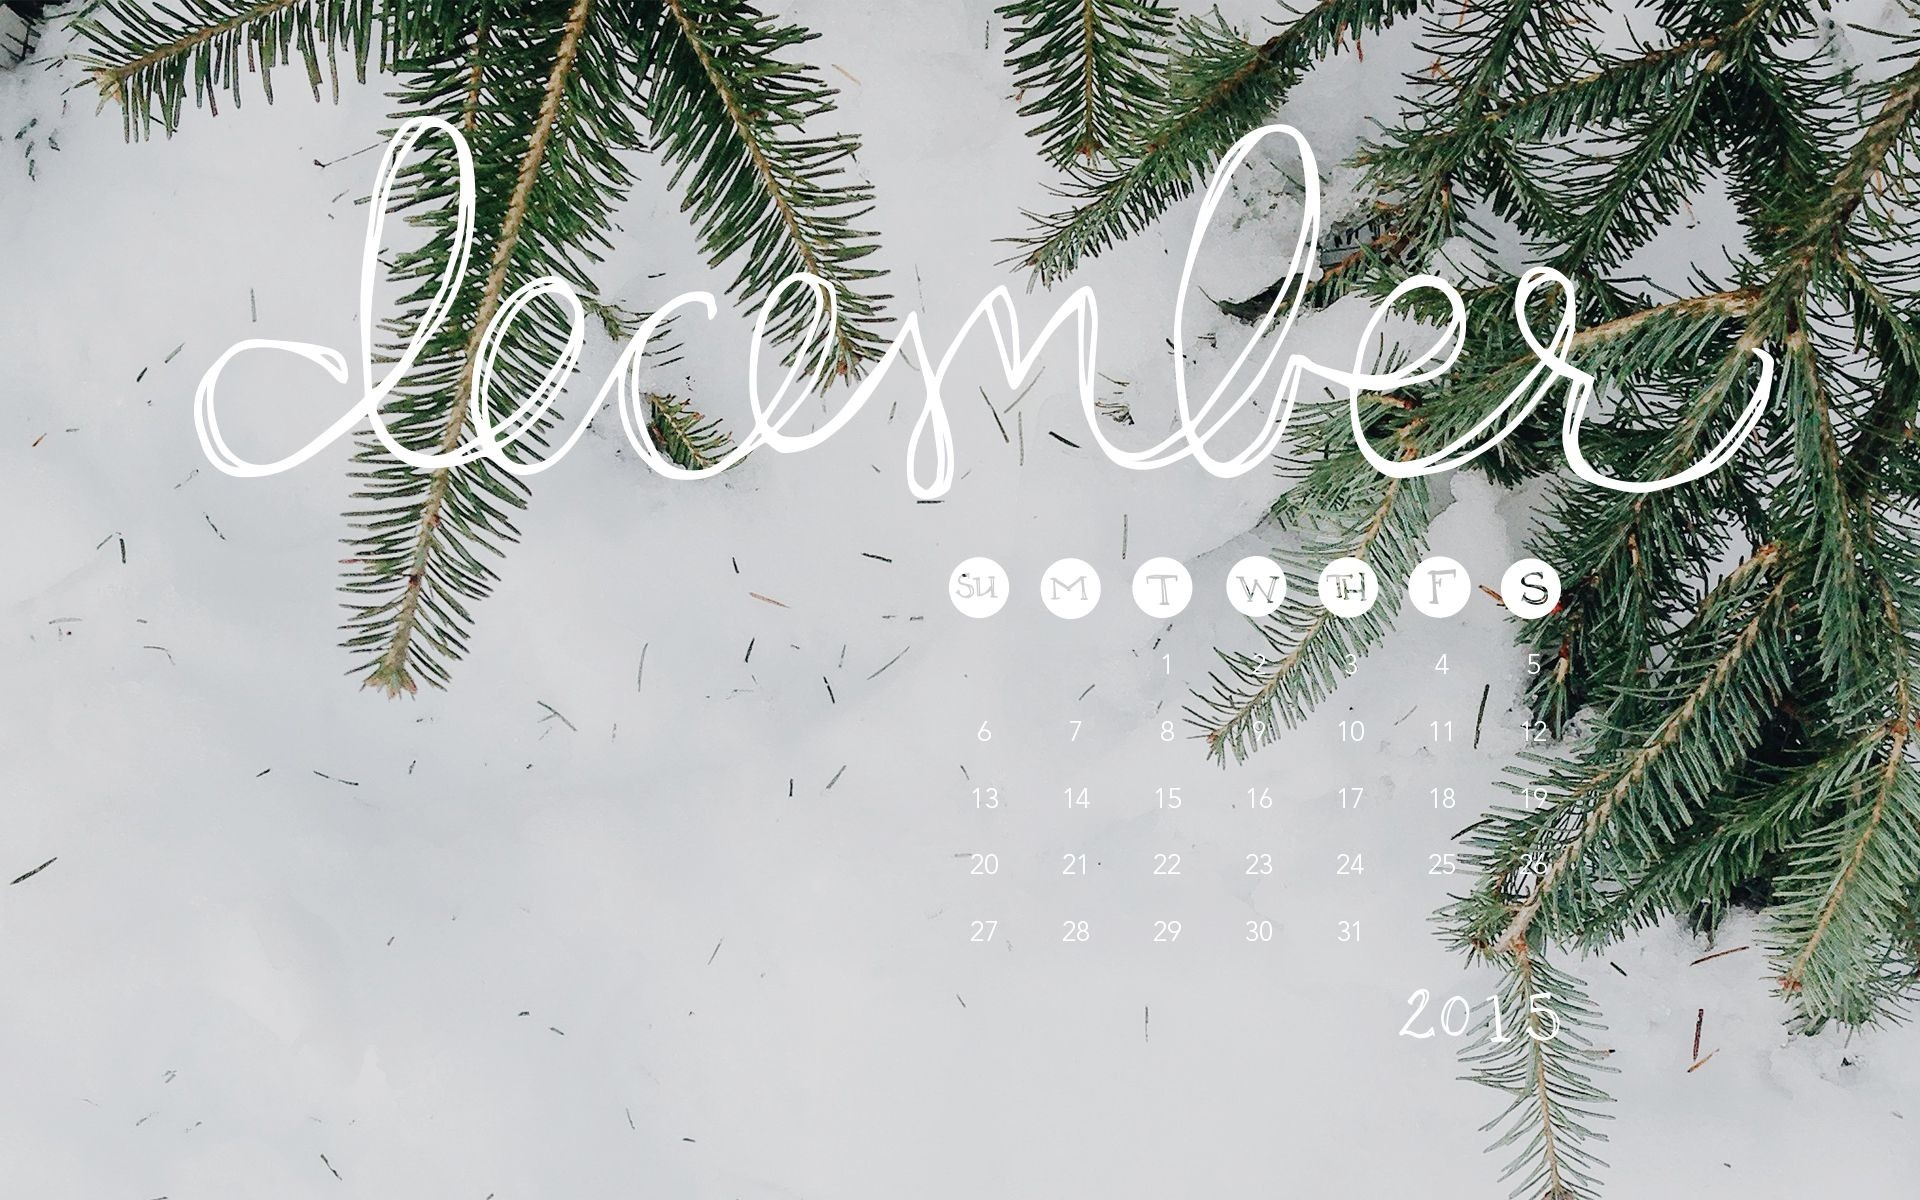 Christmas Wallpaper for Mac (75+ images)